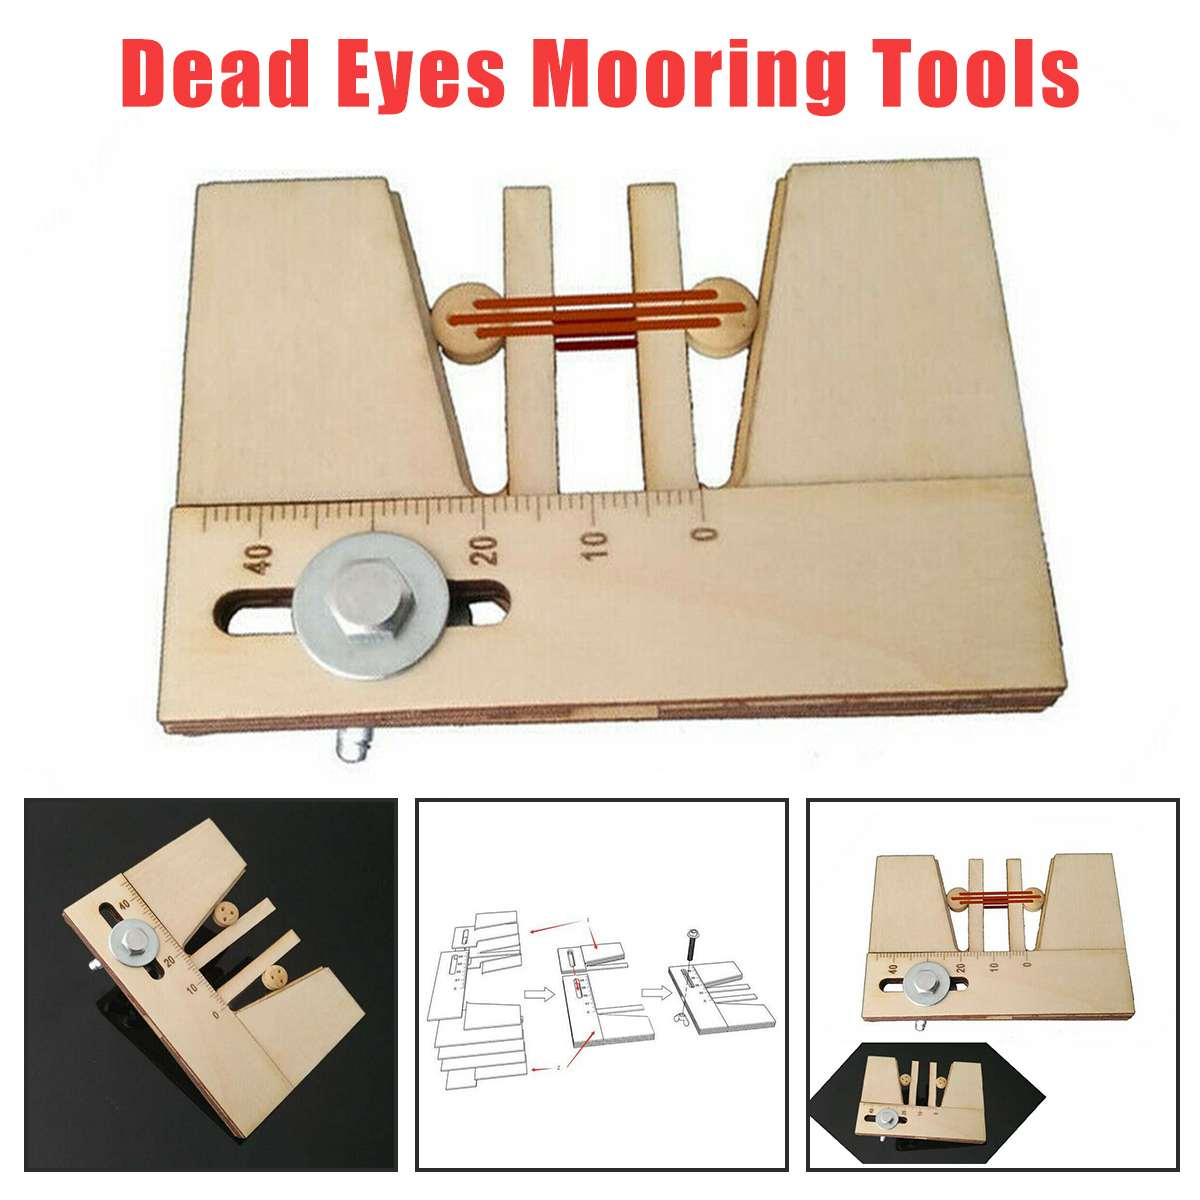 CUTEACC Auxiliary Wooden Dead Eyes Mooring Tool Fix Tools For Wood Ship Model Kit Adjustable Accessories Fix Hand Mooring Tool